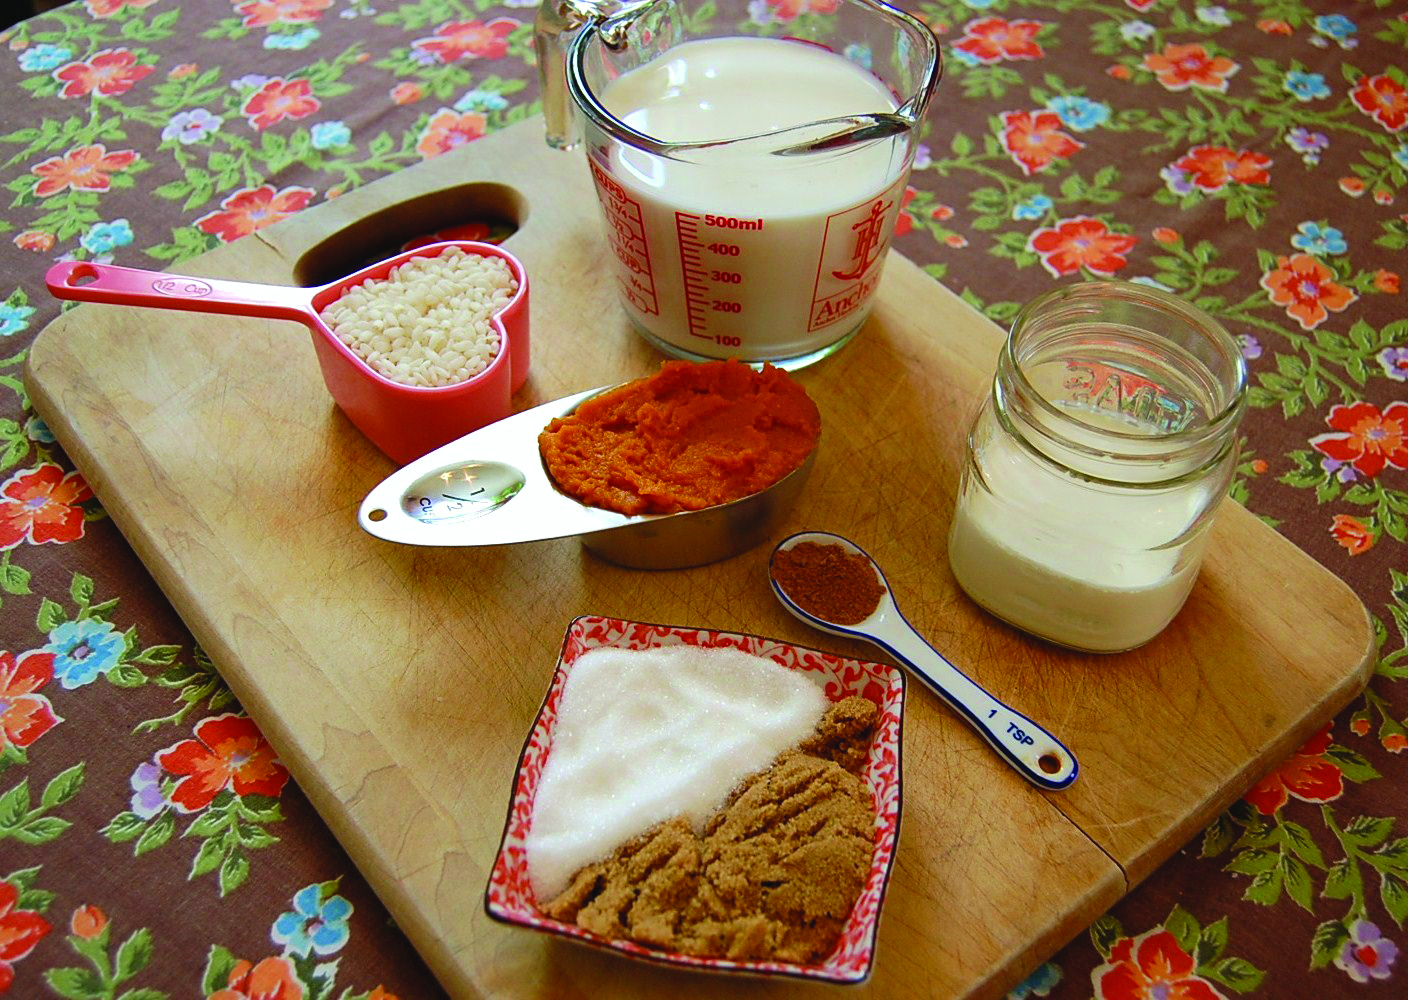 rice-pudding-ingredients